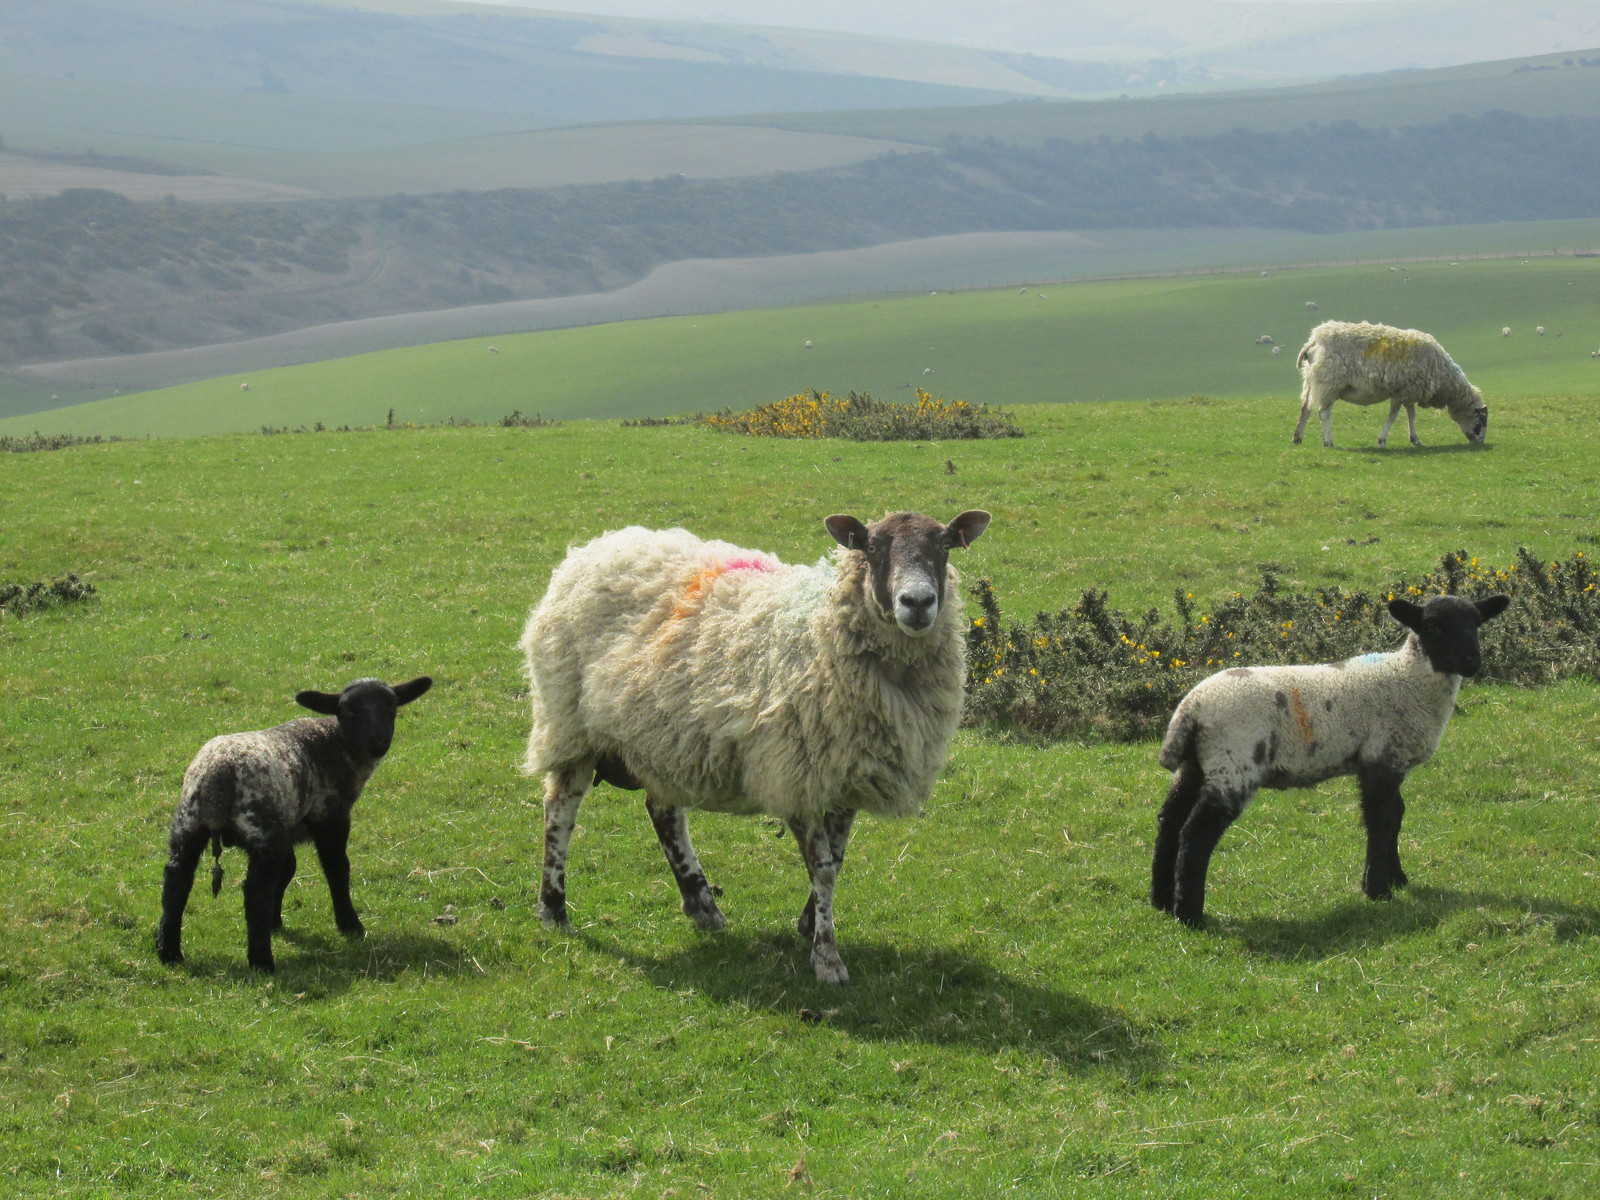 April 6, 2015: Glynde to Seaford Sheep family on South Downs